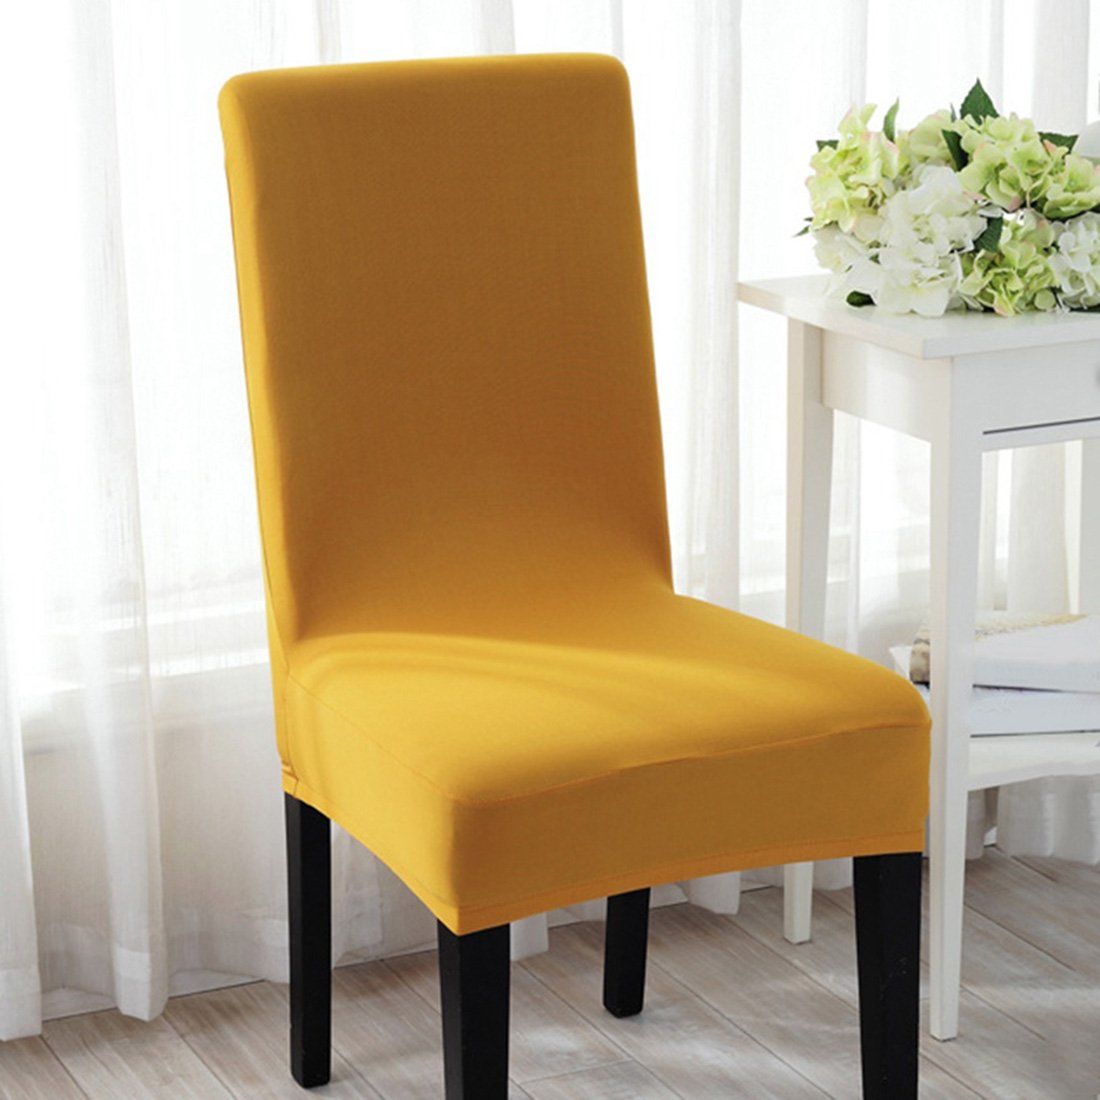 Pinji 4PCS Spandex Stretch Chair Cover Dining Room Home Decor Removable Washable Slipcover Protector Yellow